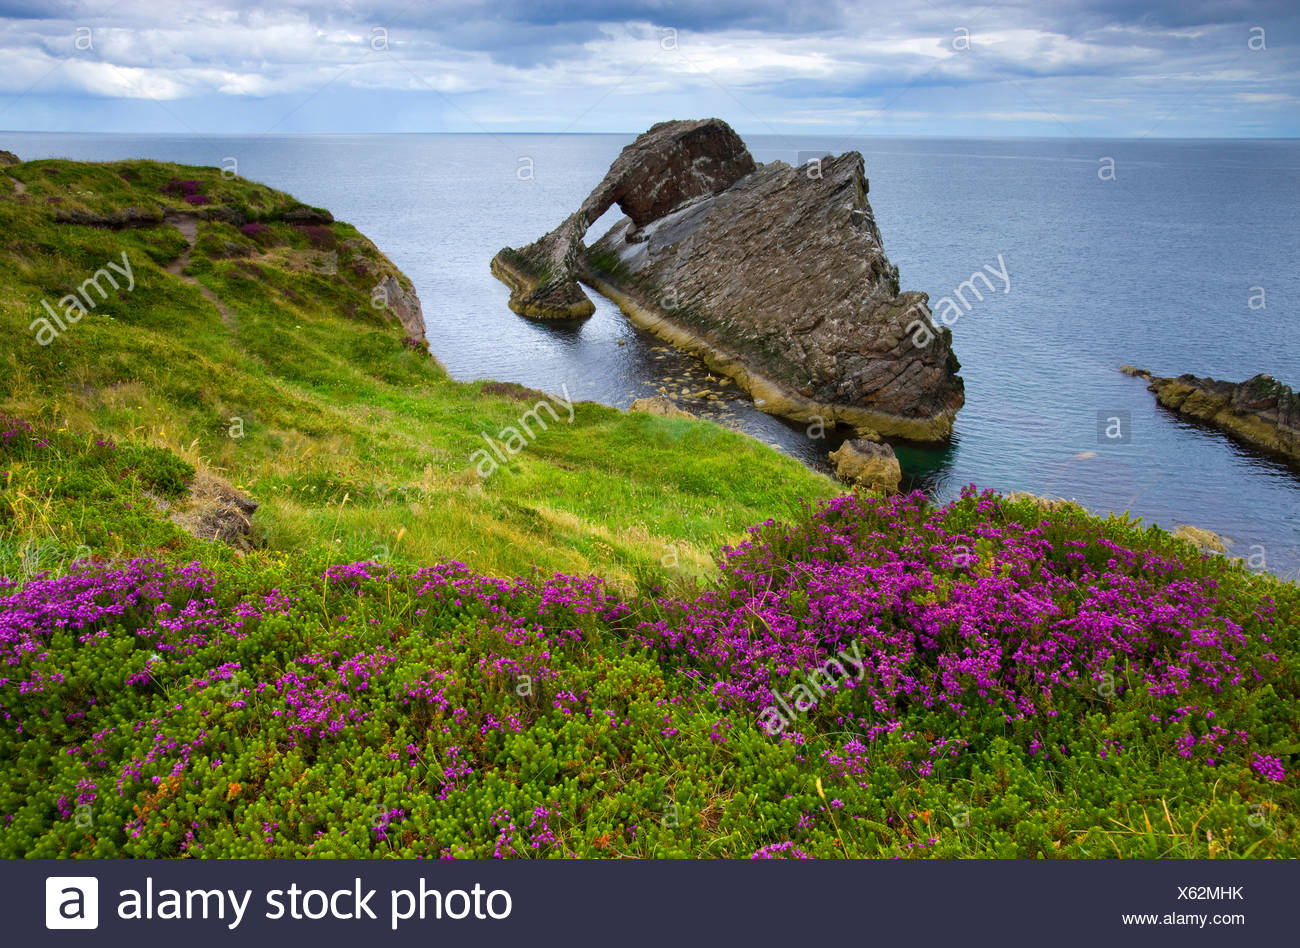 Bow Fiddle rock, skirt, Great Britain, Scotland, Europe, sea, coast, cliff coast, cliff forms, cliff curves, meadow, moor plants - Stock Image